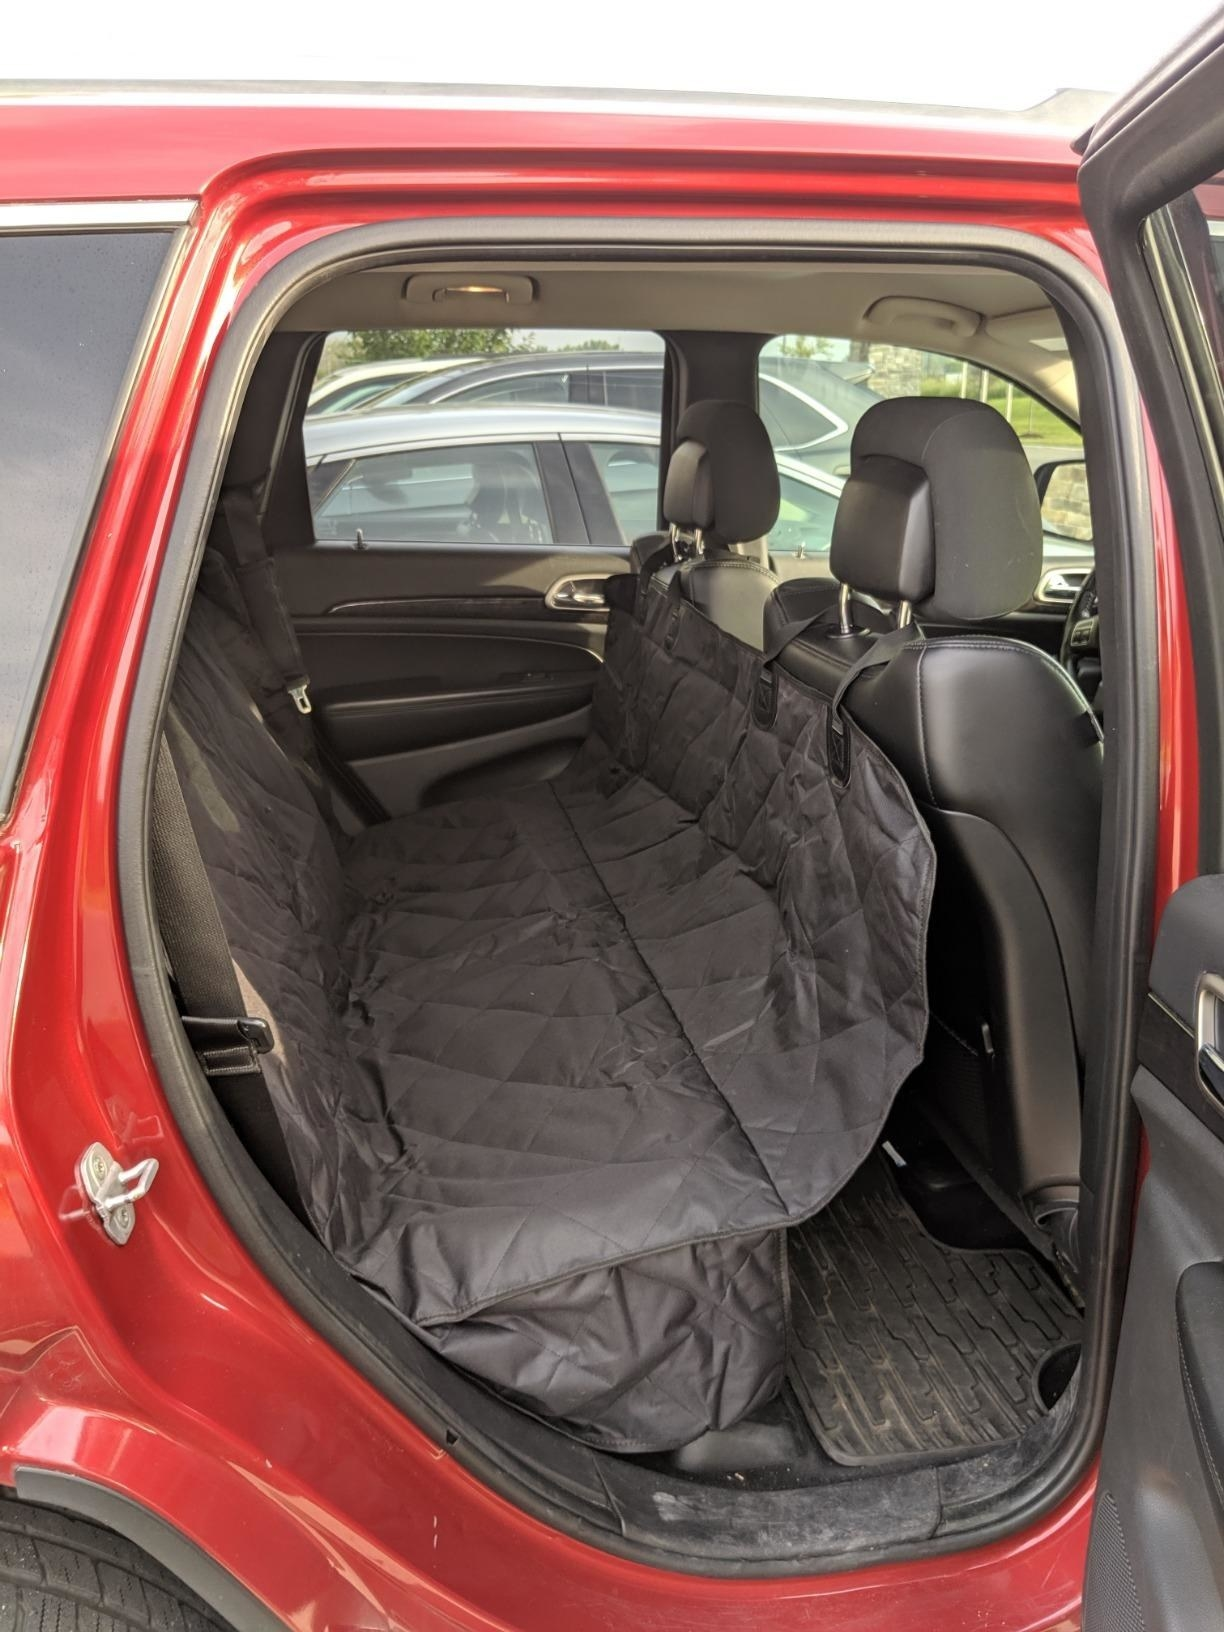 The cover in use in the backseat of a car, anchored to the headrests, creating a hammock that does not allow dog access to floor of car